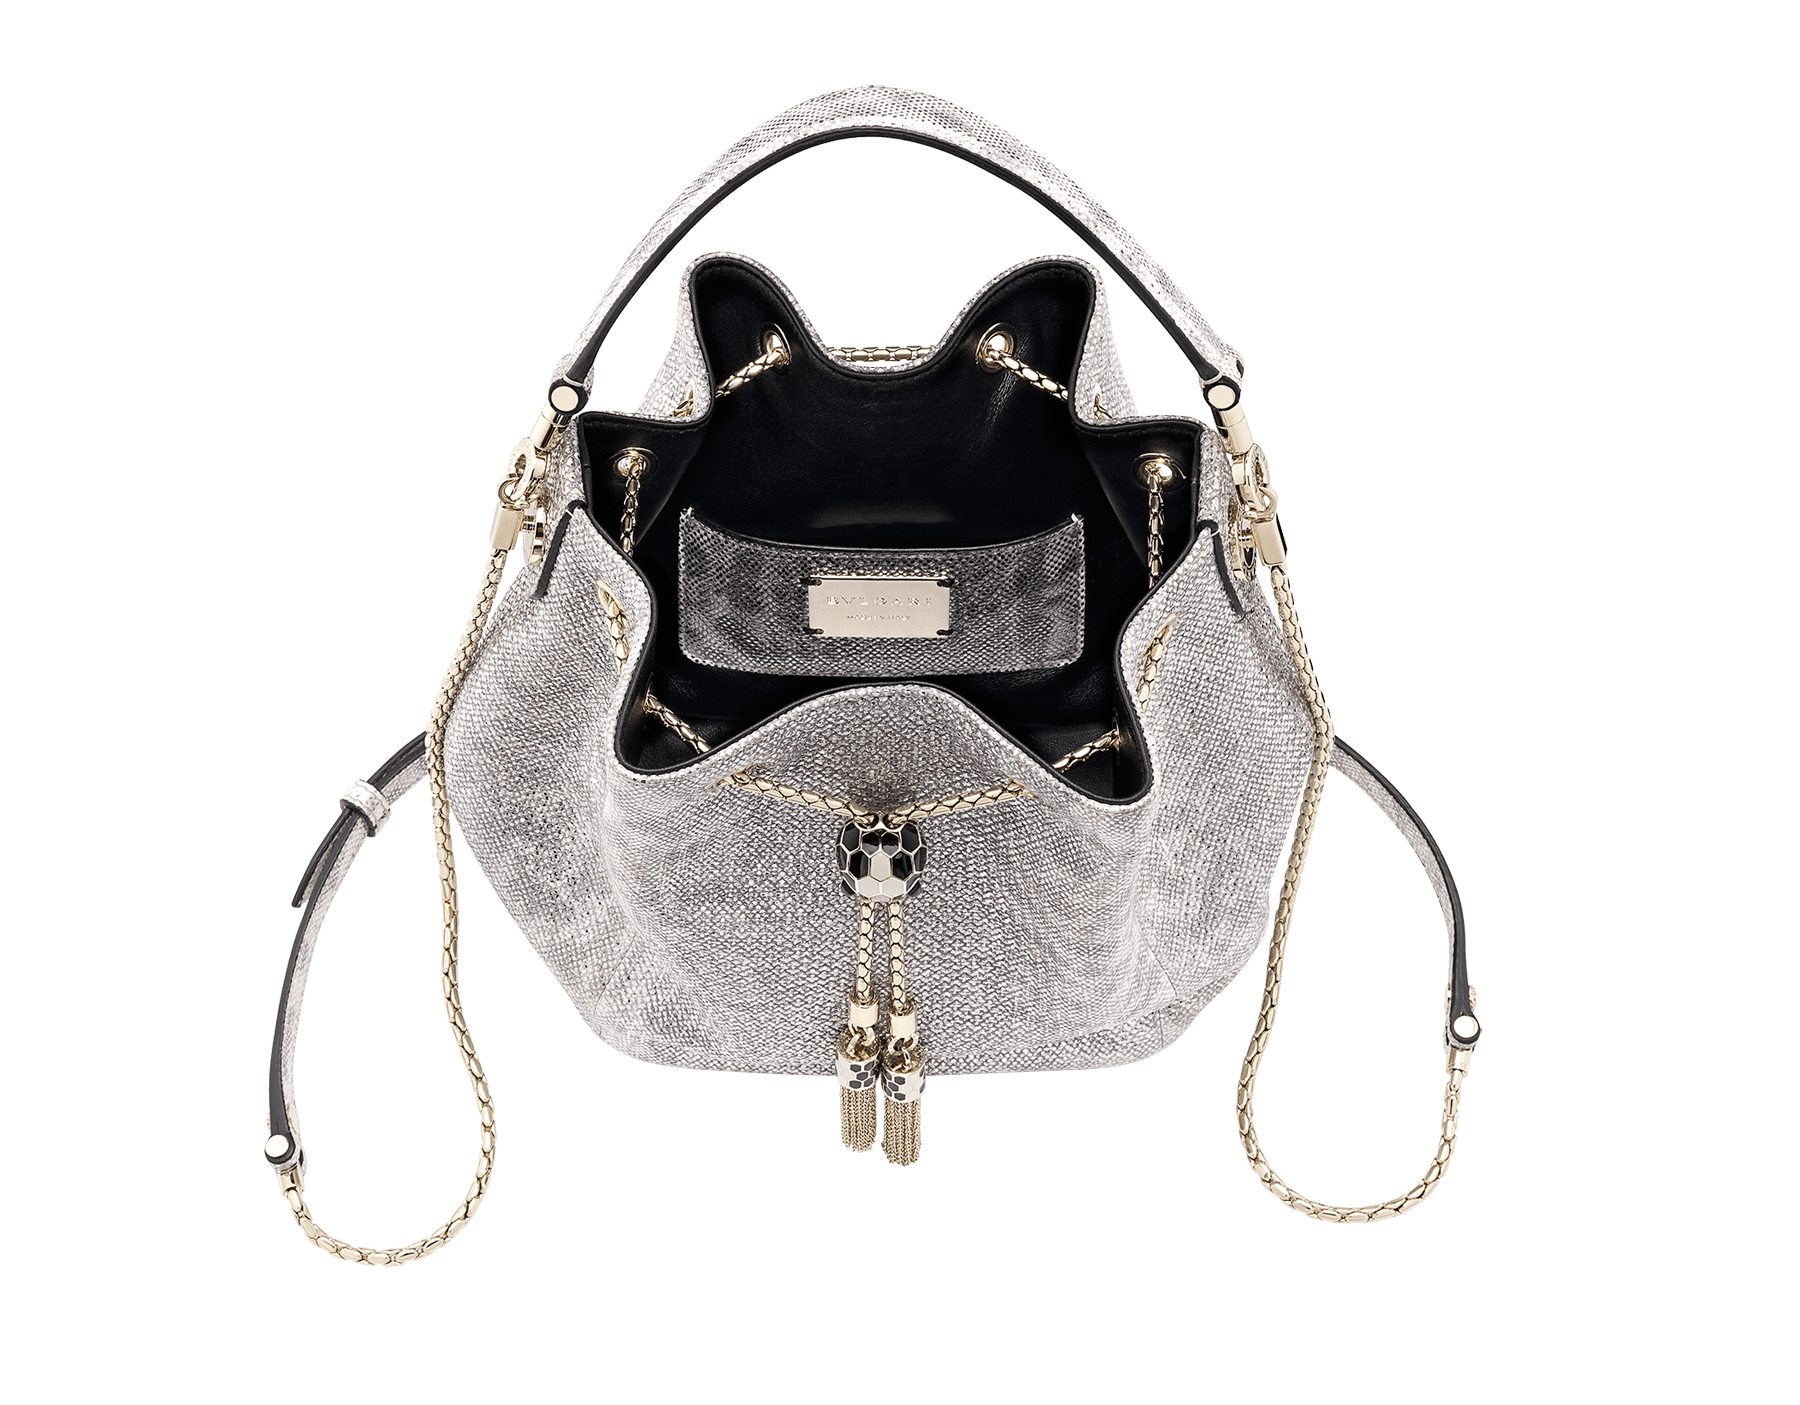 Bucket Serpenti Forever in white agate metallic karung and black internal lining. Hardware in light gold plated brass and snake head closure in black and white enamel, with eyes in black onyx. 289289 image 4